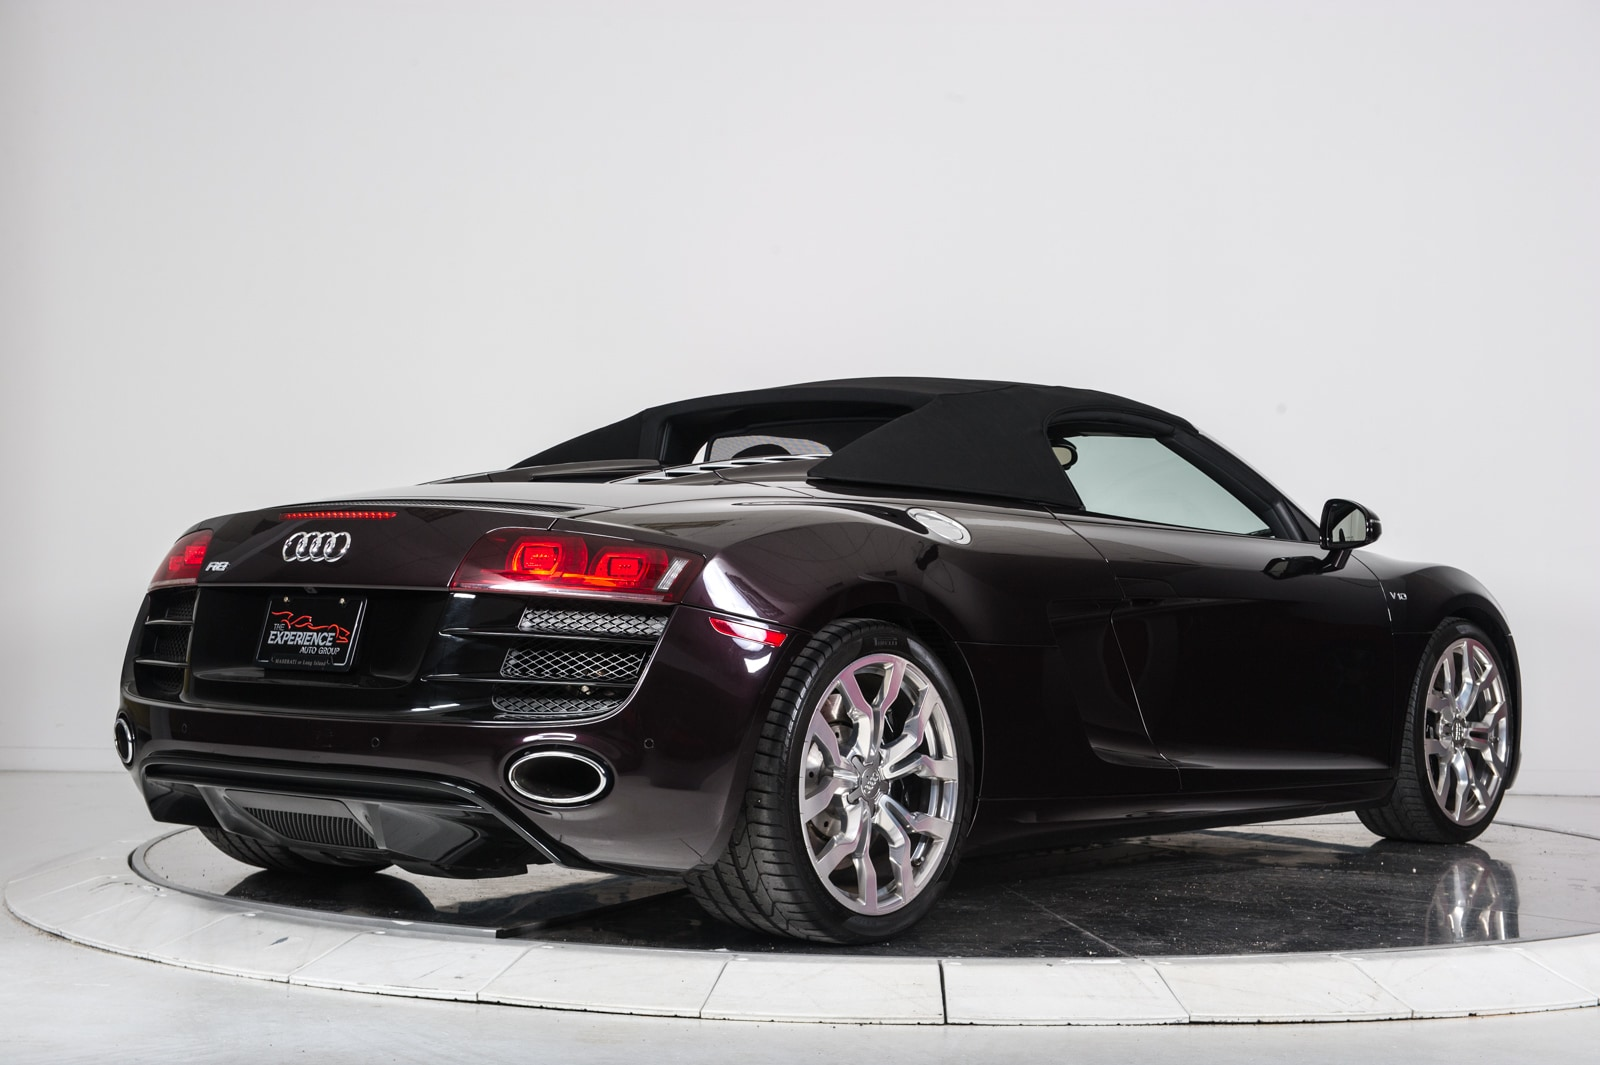 Used 2012 AUDI R8 5.2 SPYDER For Sale   Plainview near Long Island, NY   VIN: WUAVNAFG8CN002008